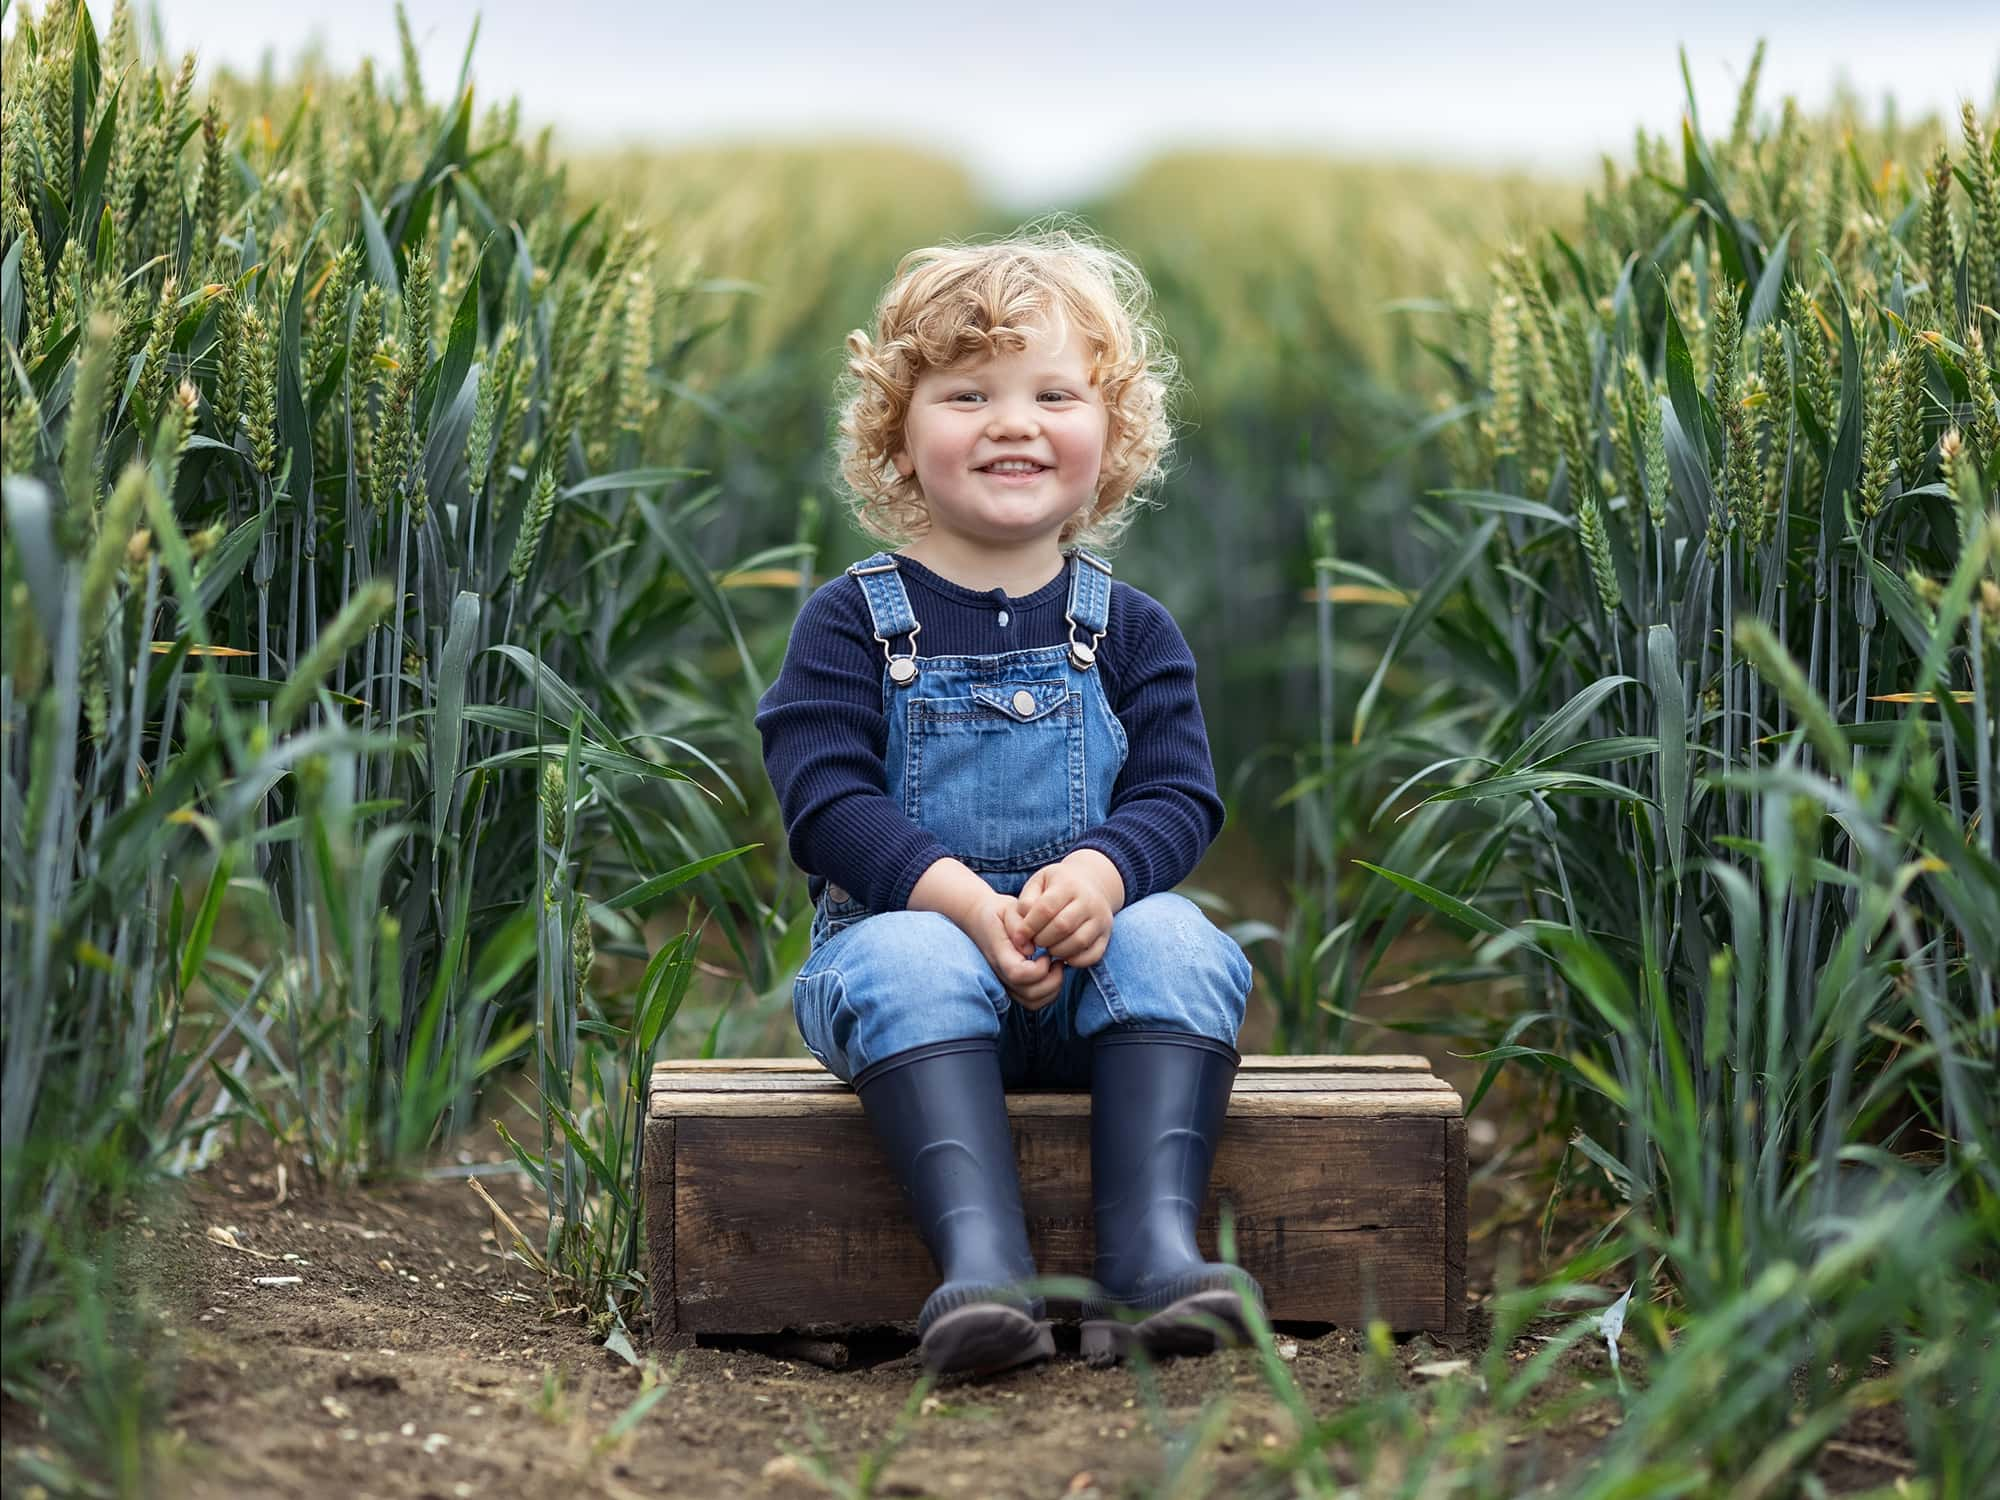 Toddler in dungarees sits on a wooden crate in a wheat field